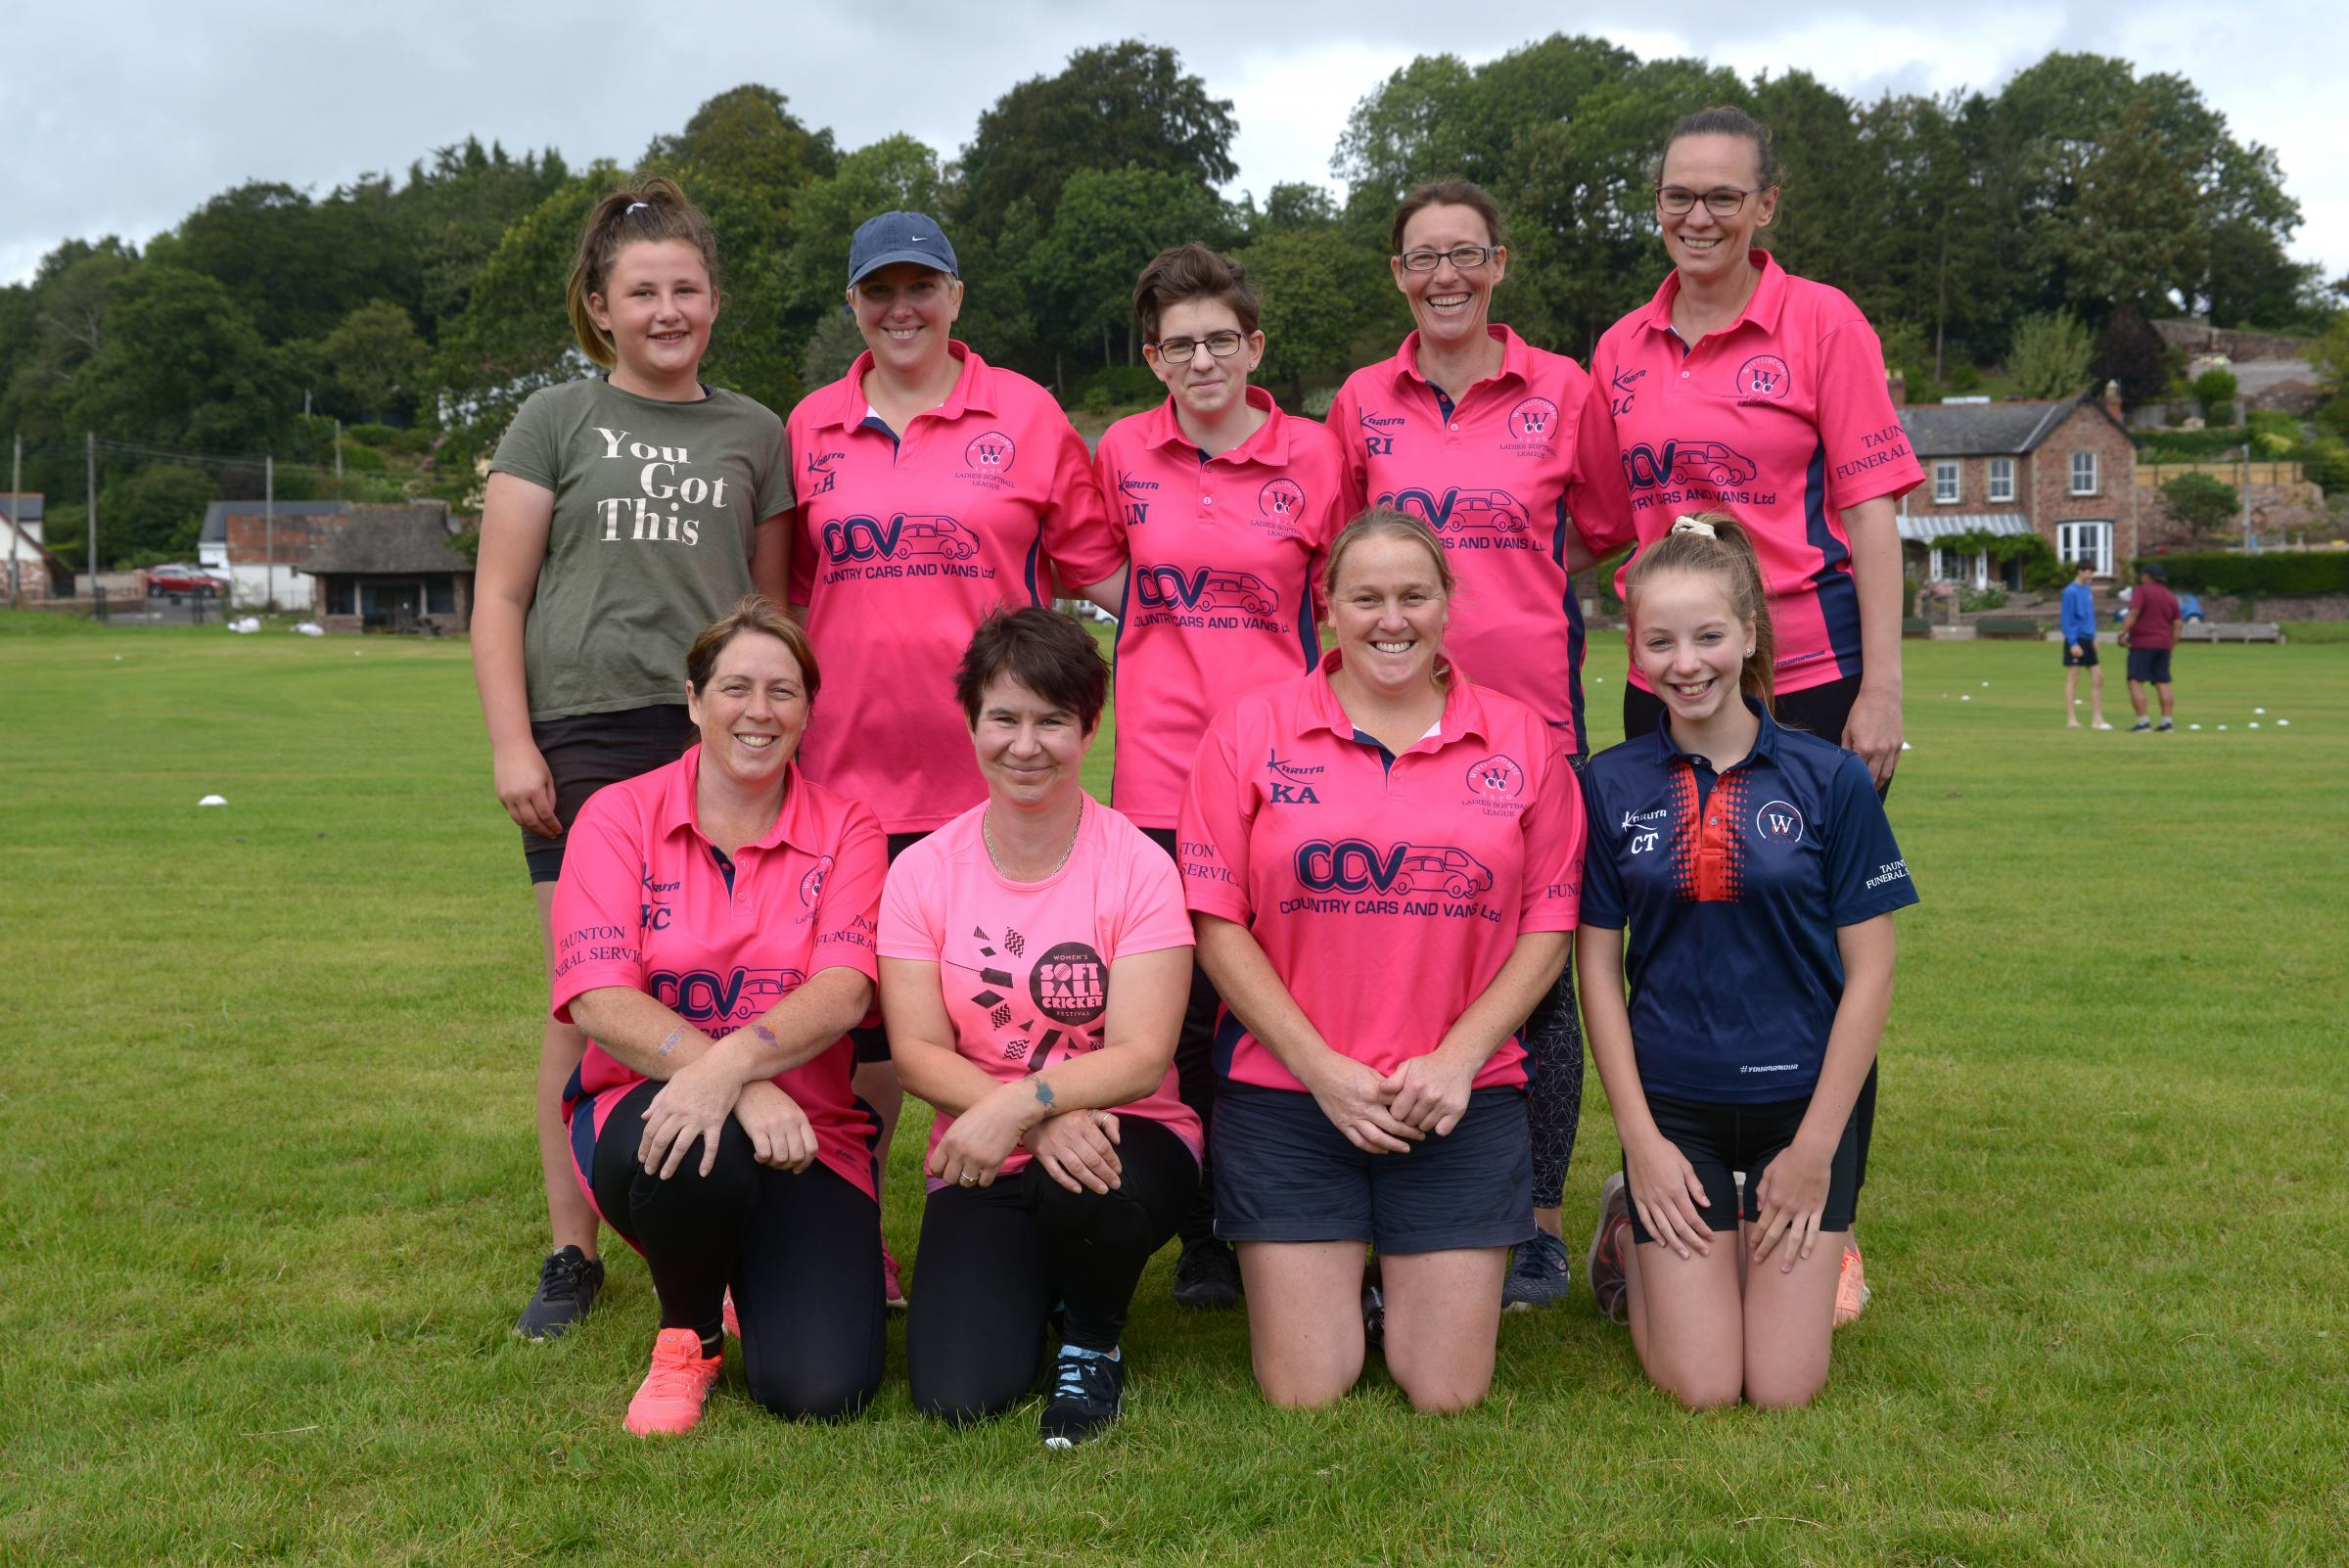 Wiveliscombe Cricket Club host women's softball cricket festival